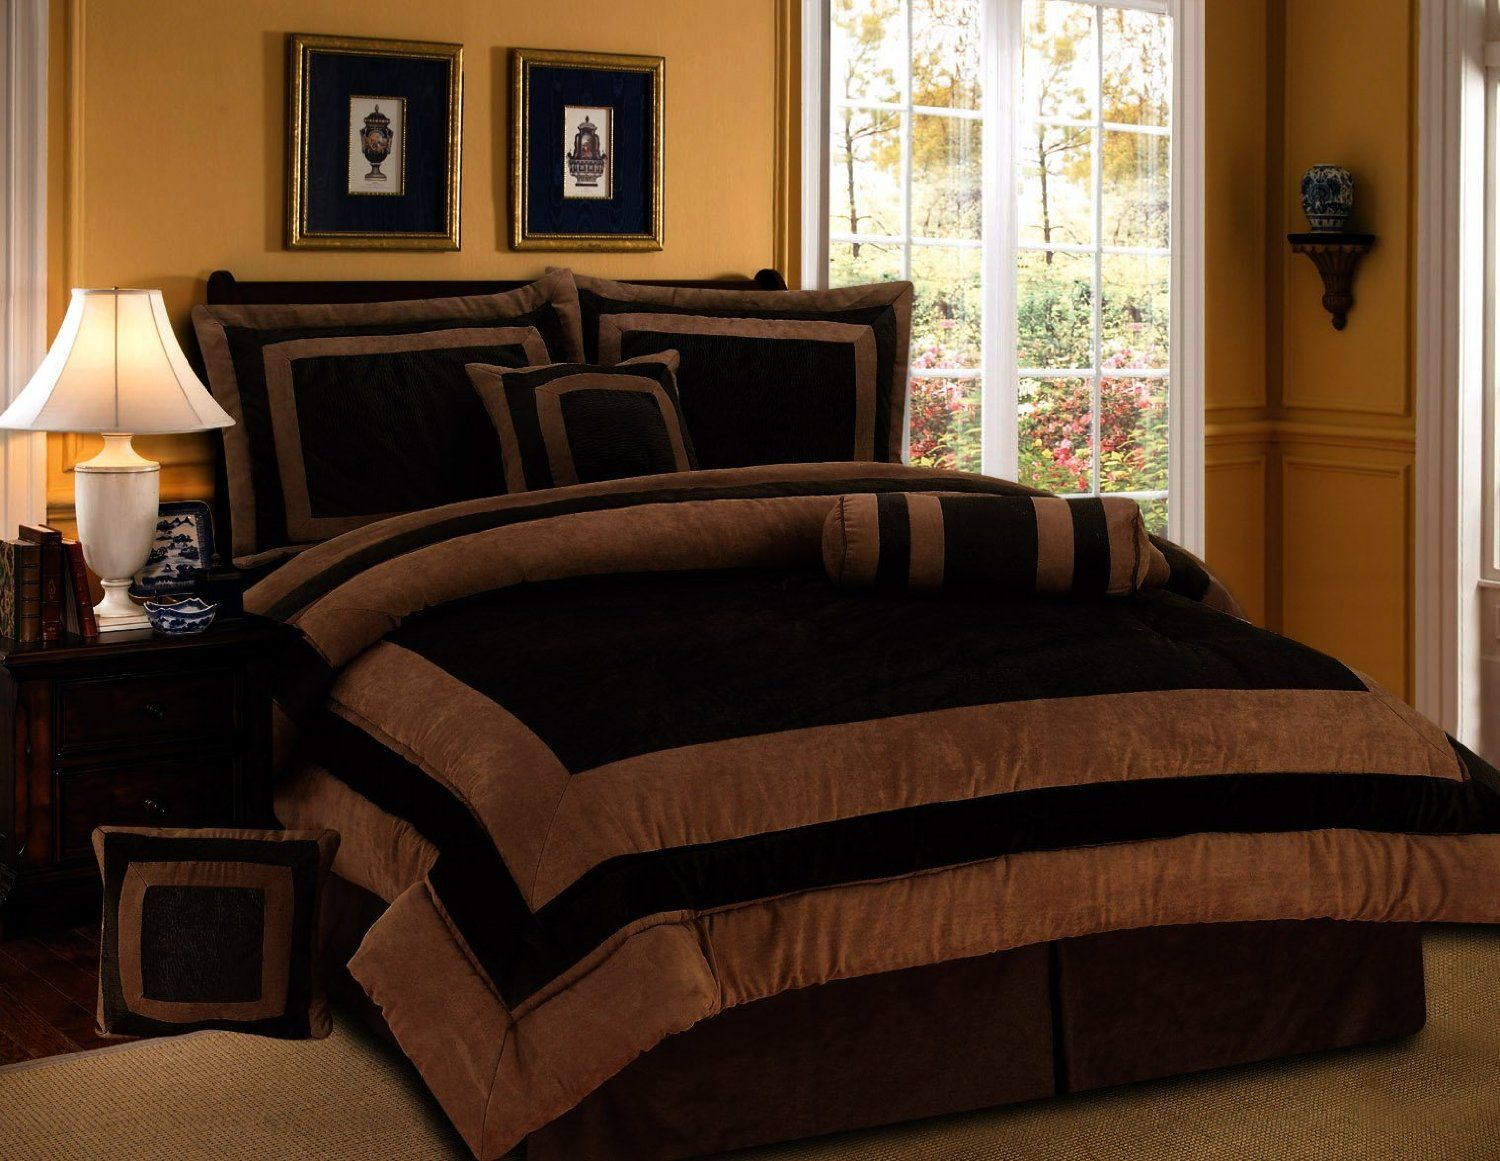 Brown bedding sets queen - 7 Pieces Chocolate Brown Suede Short Fur Comforter Set Queen Bedding Set Bed In